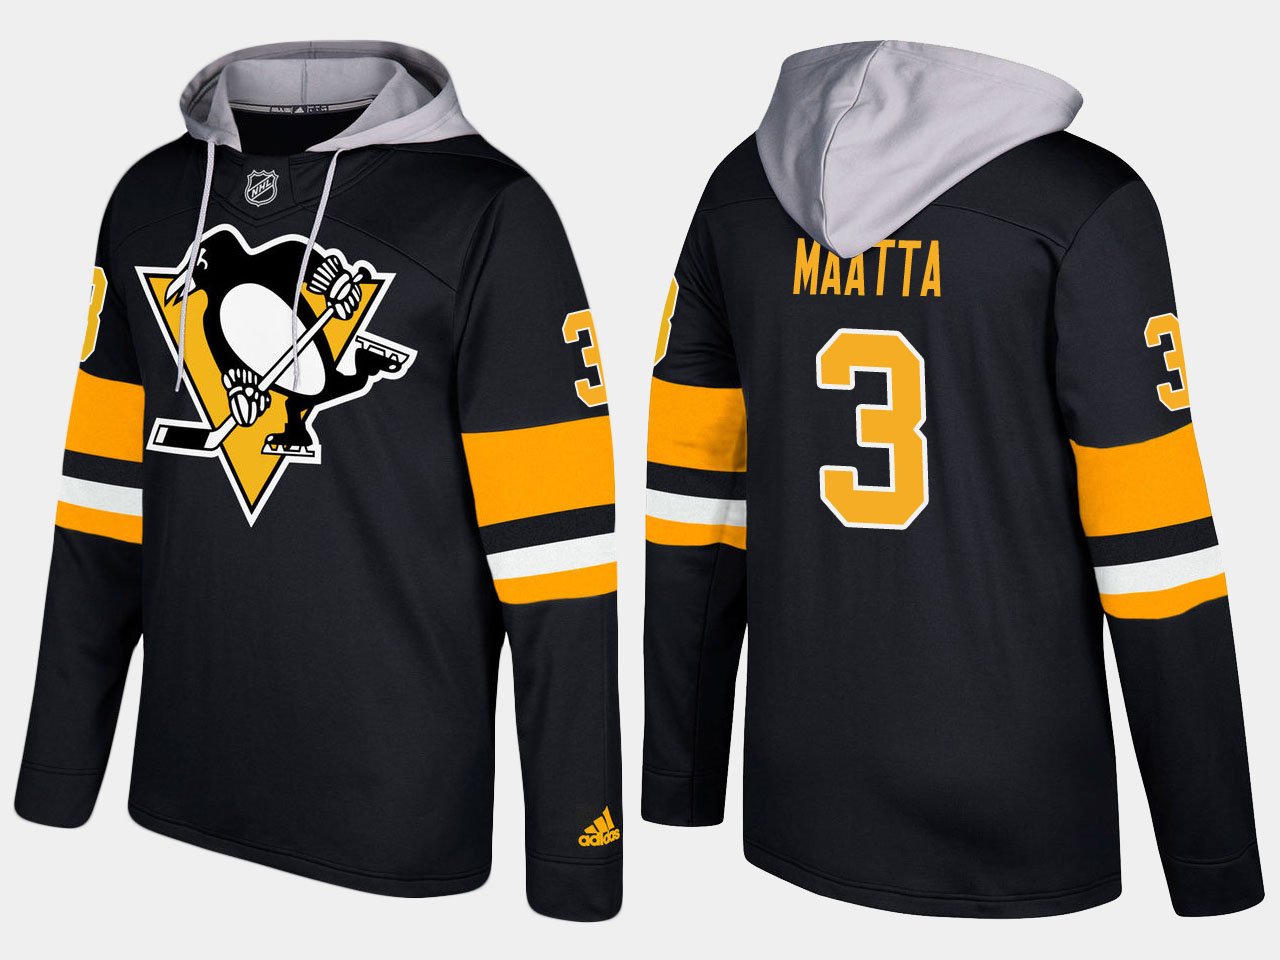 Penguins #3 Olli Maatta Black Name And Number Hoodie